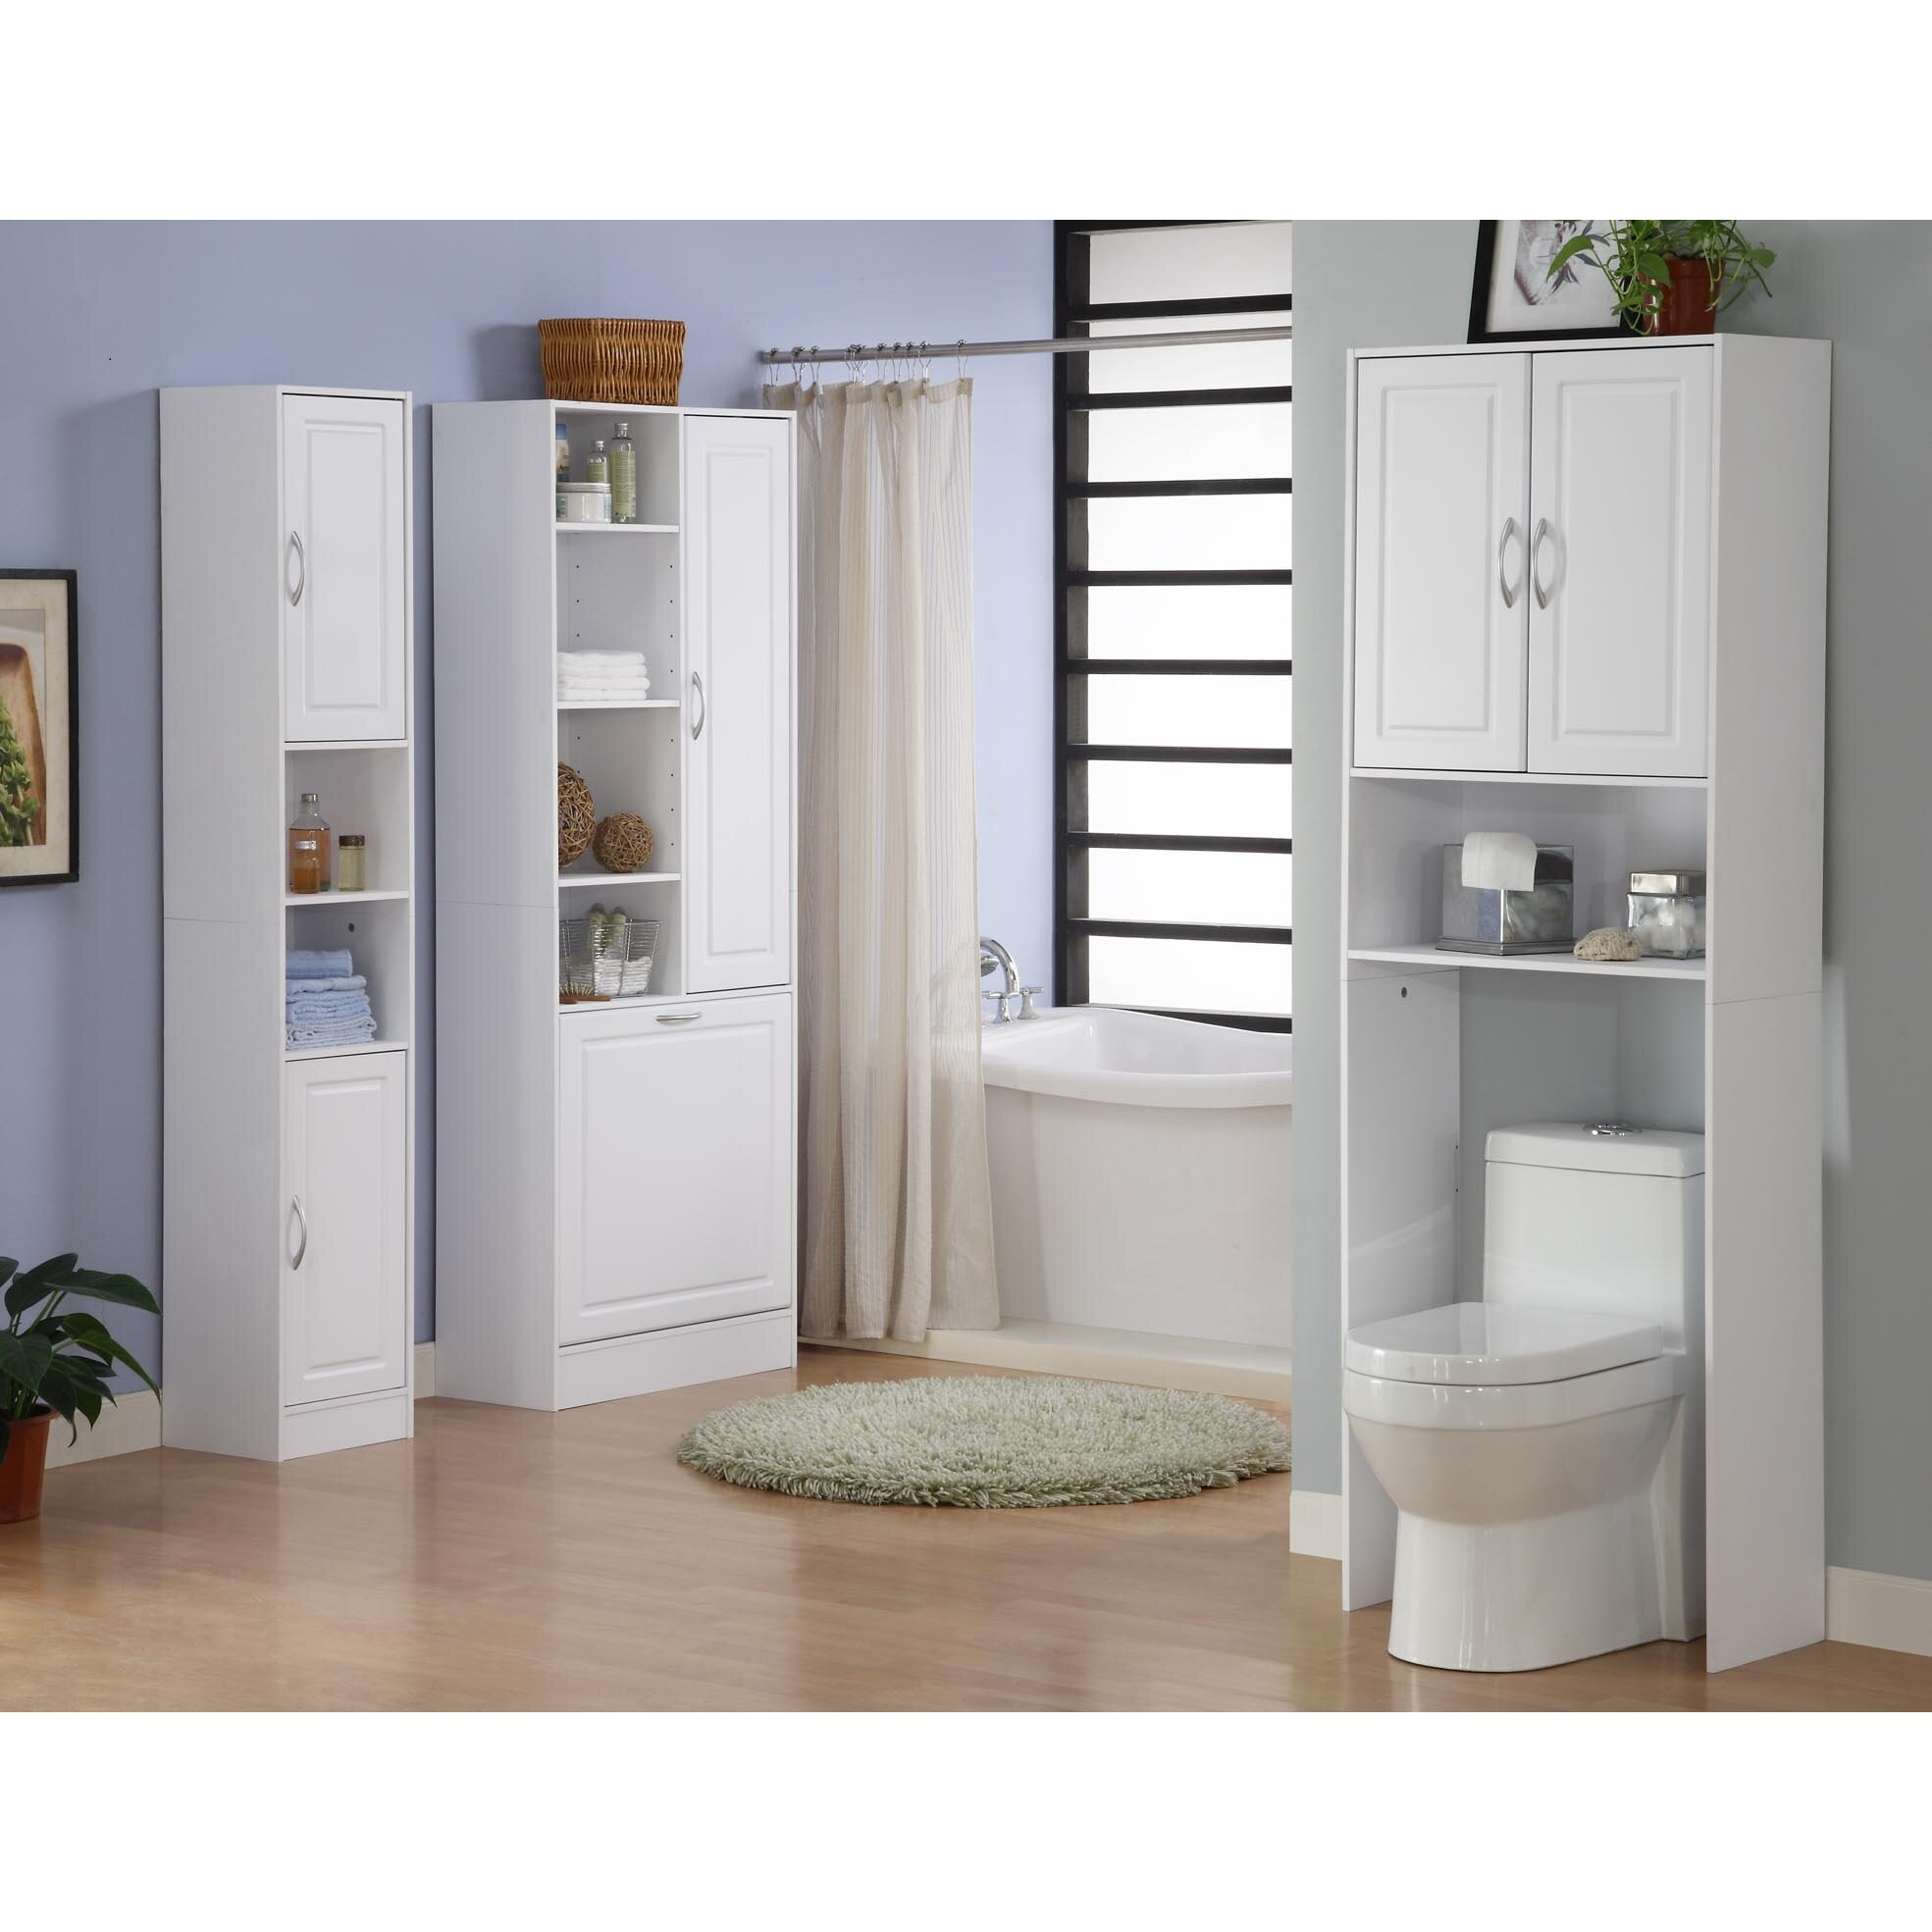 4d concepts 25 x 28 7 wall mounted cabinet reviews wayfair. Black Bedroom Furniture Sets. Home Design Ideas